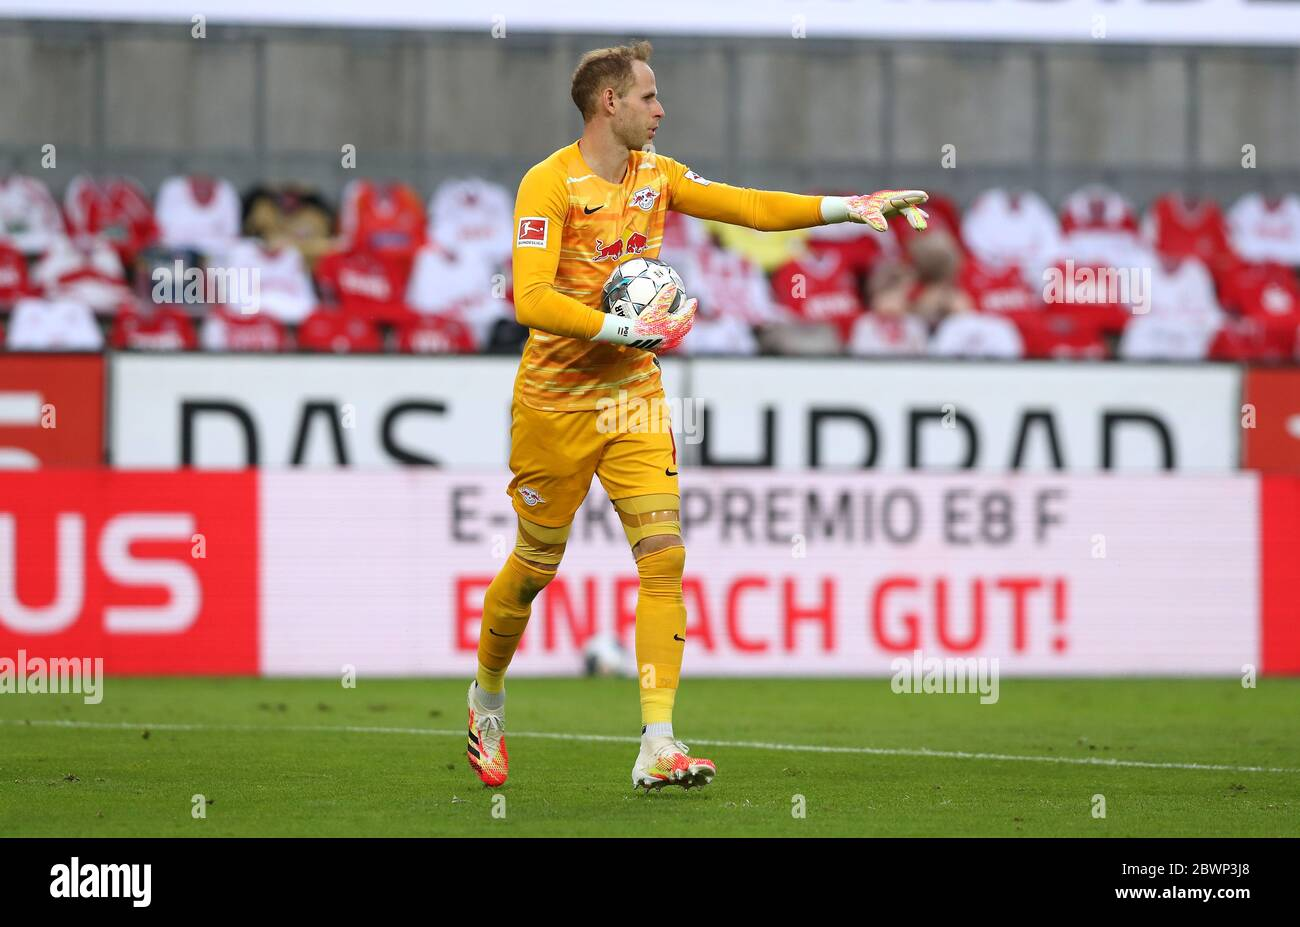 Peter Gulacsi Rb Leipzig High Resolution Stock Photography and ...